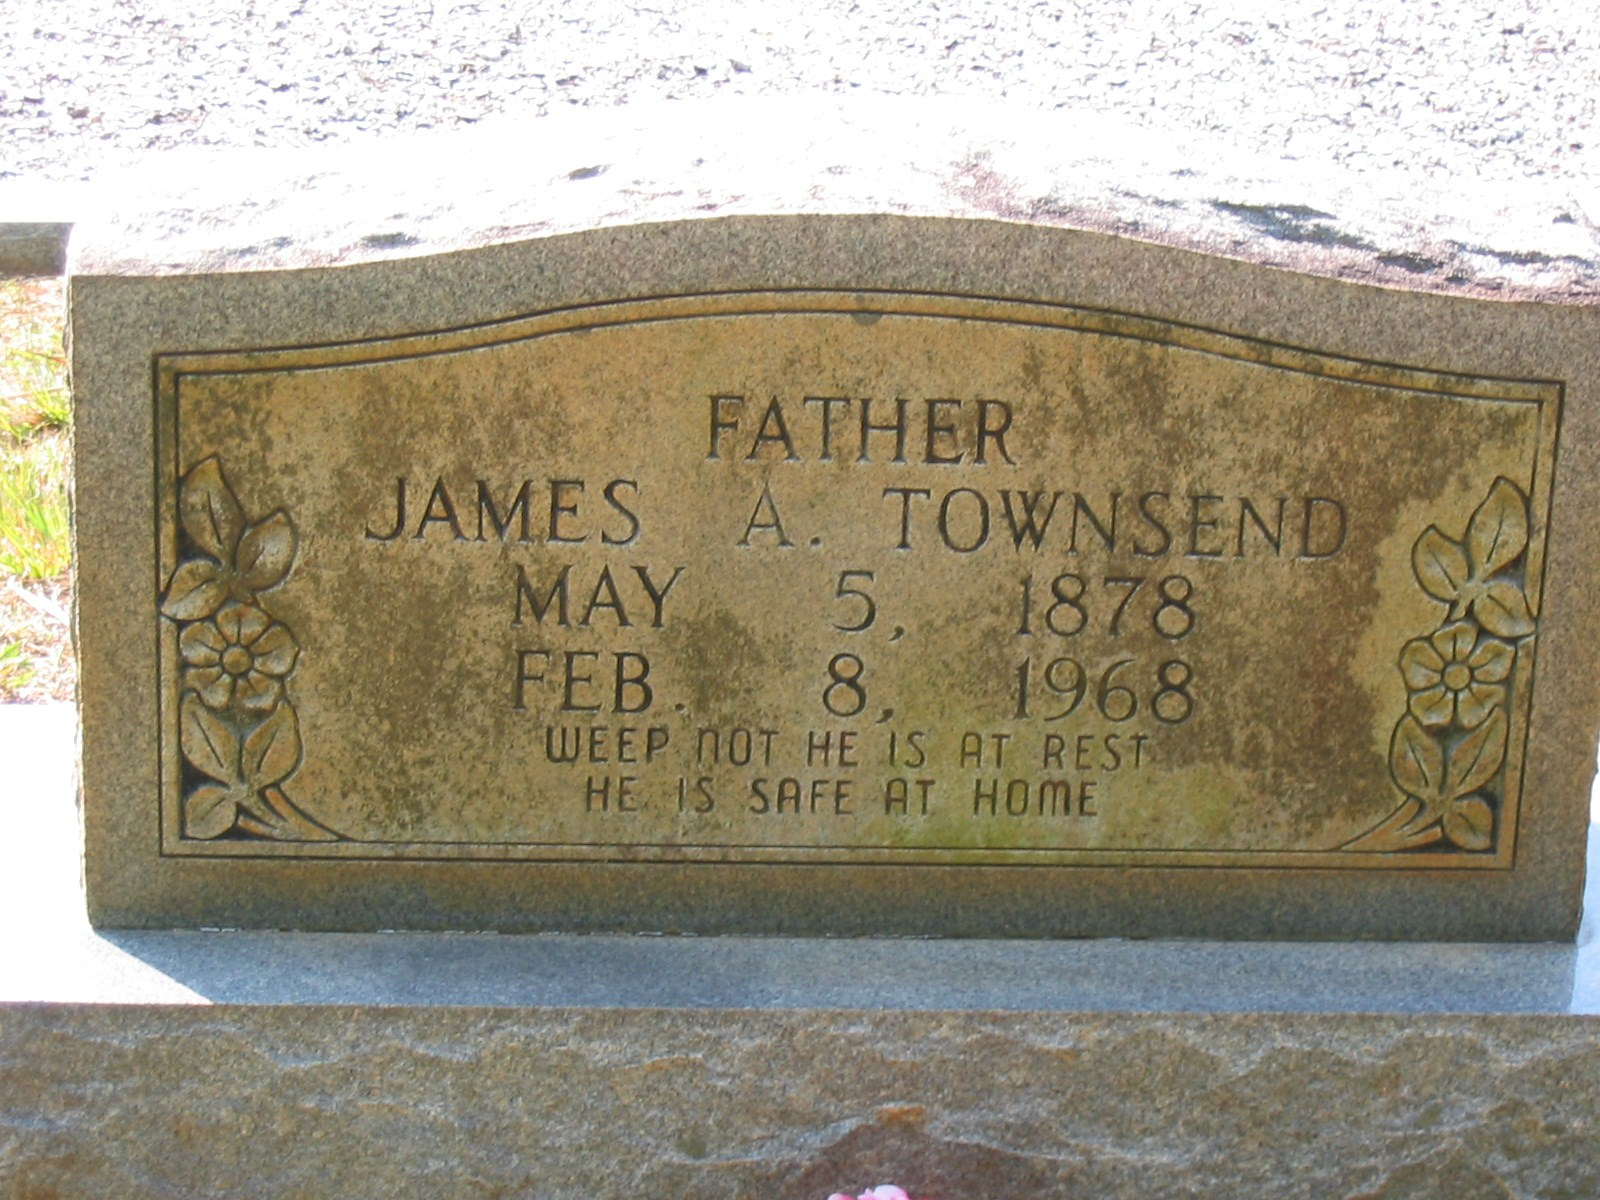 James Andrew Townsend